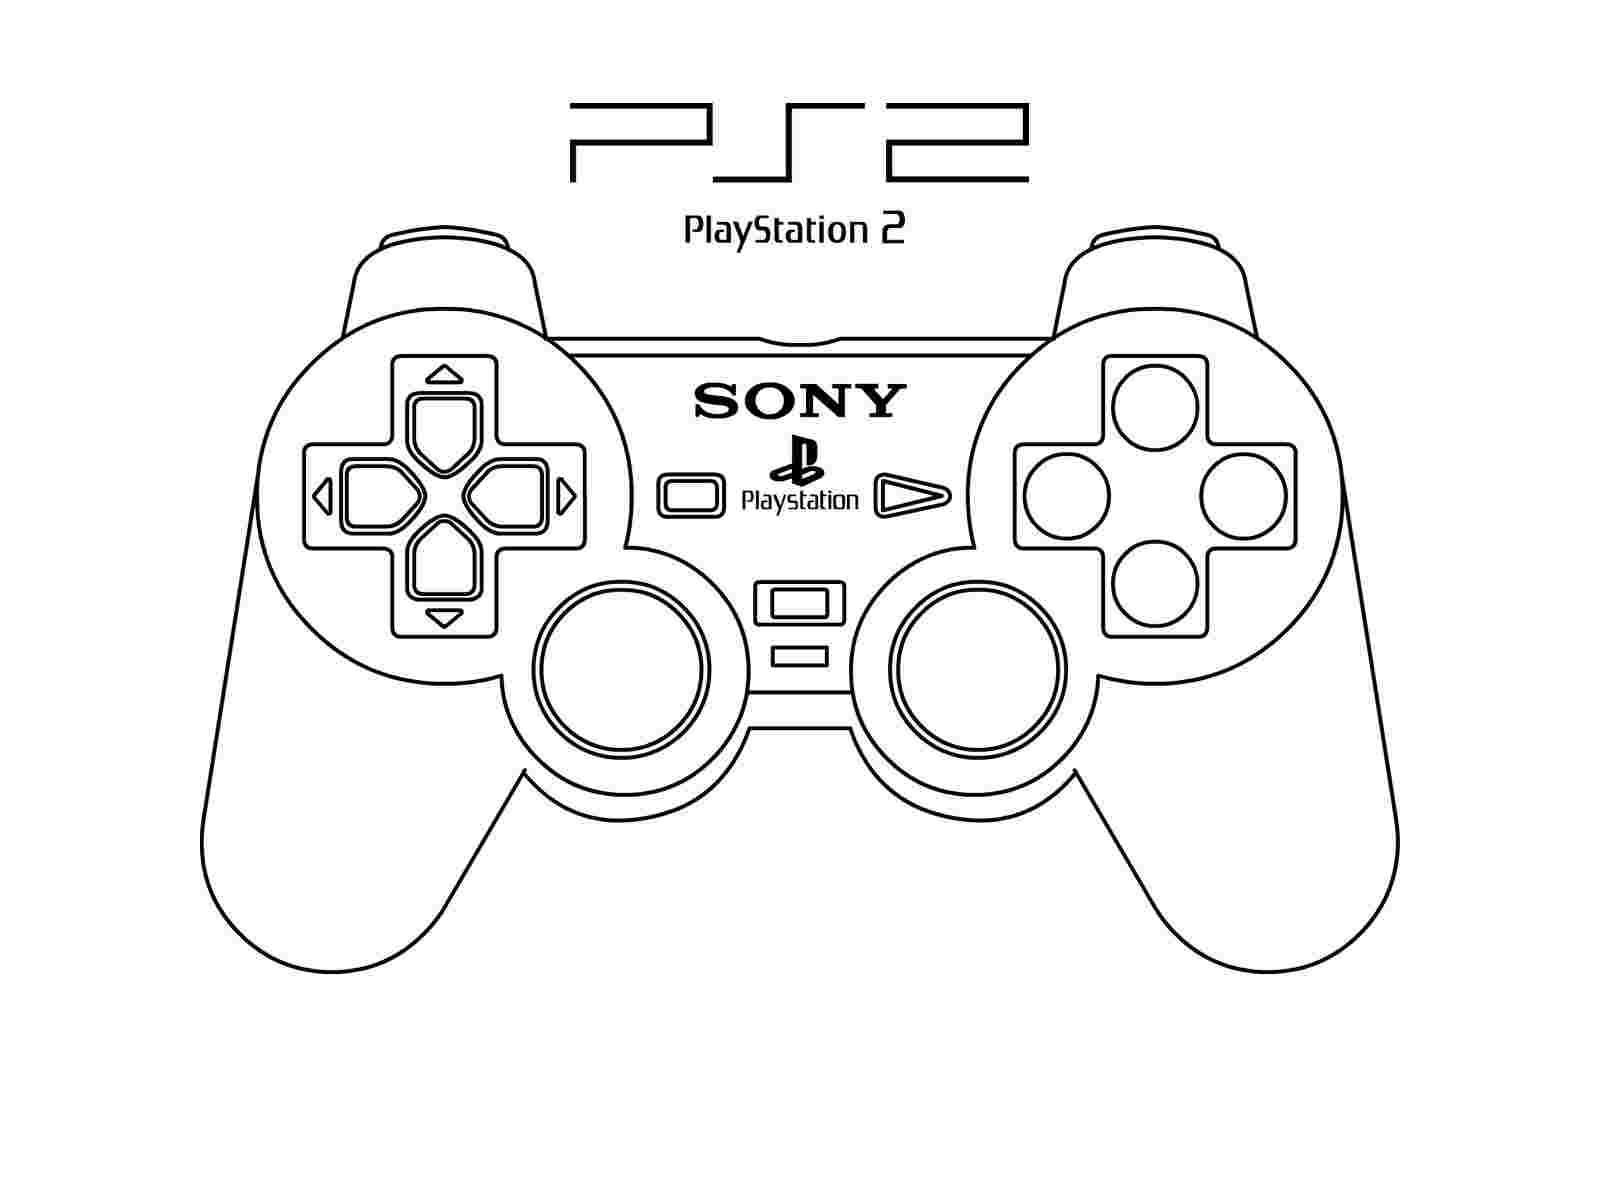 Awesome Coloring Page Xbox Controller That You Must Know You Re In Good Company If You Re Looking For Coloring Page Xbox Controller Di 2020